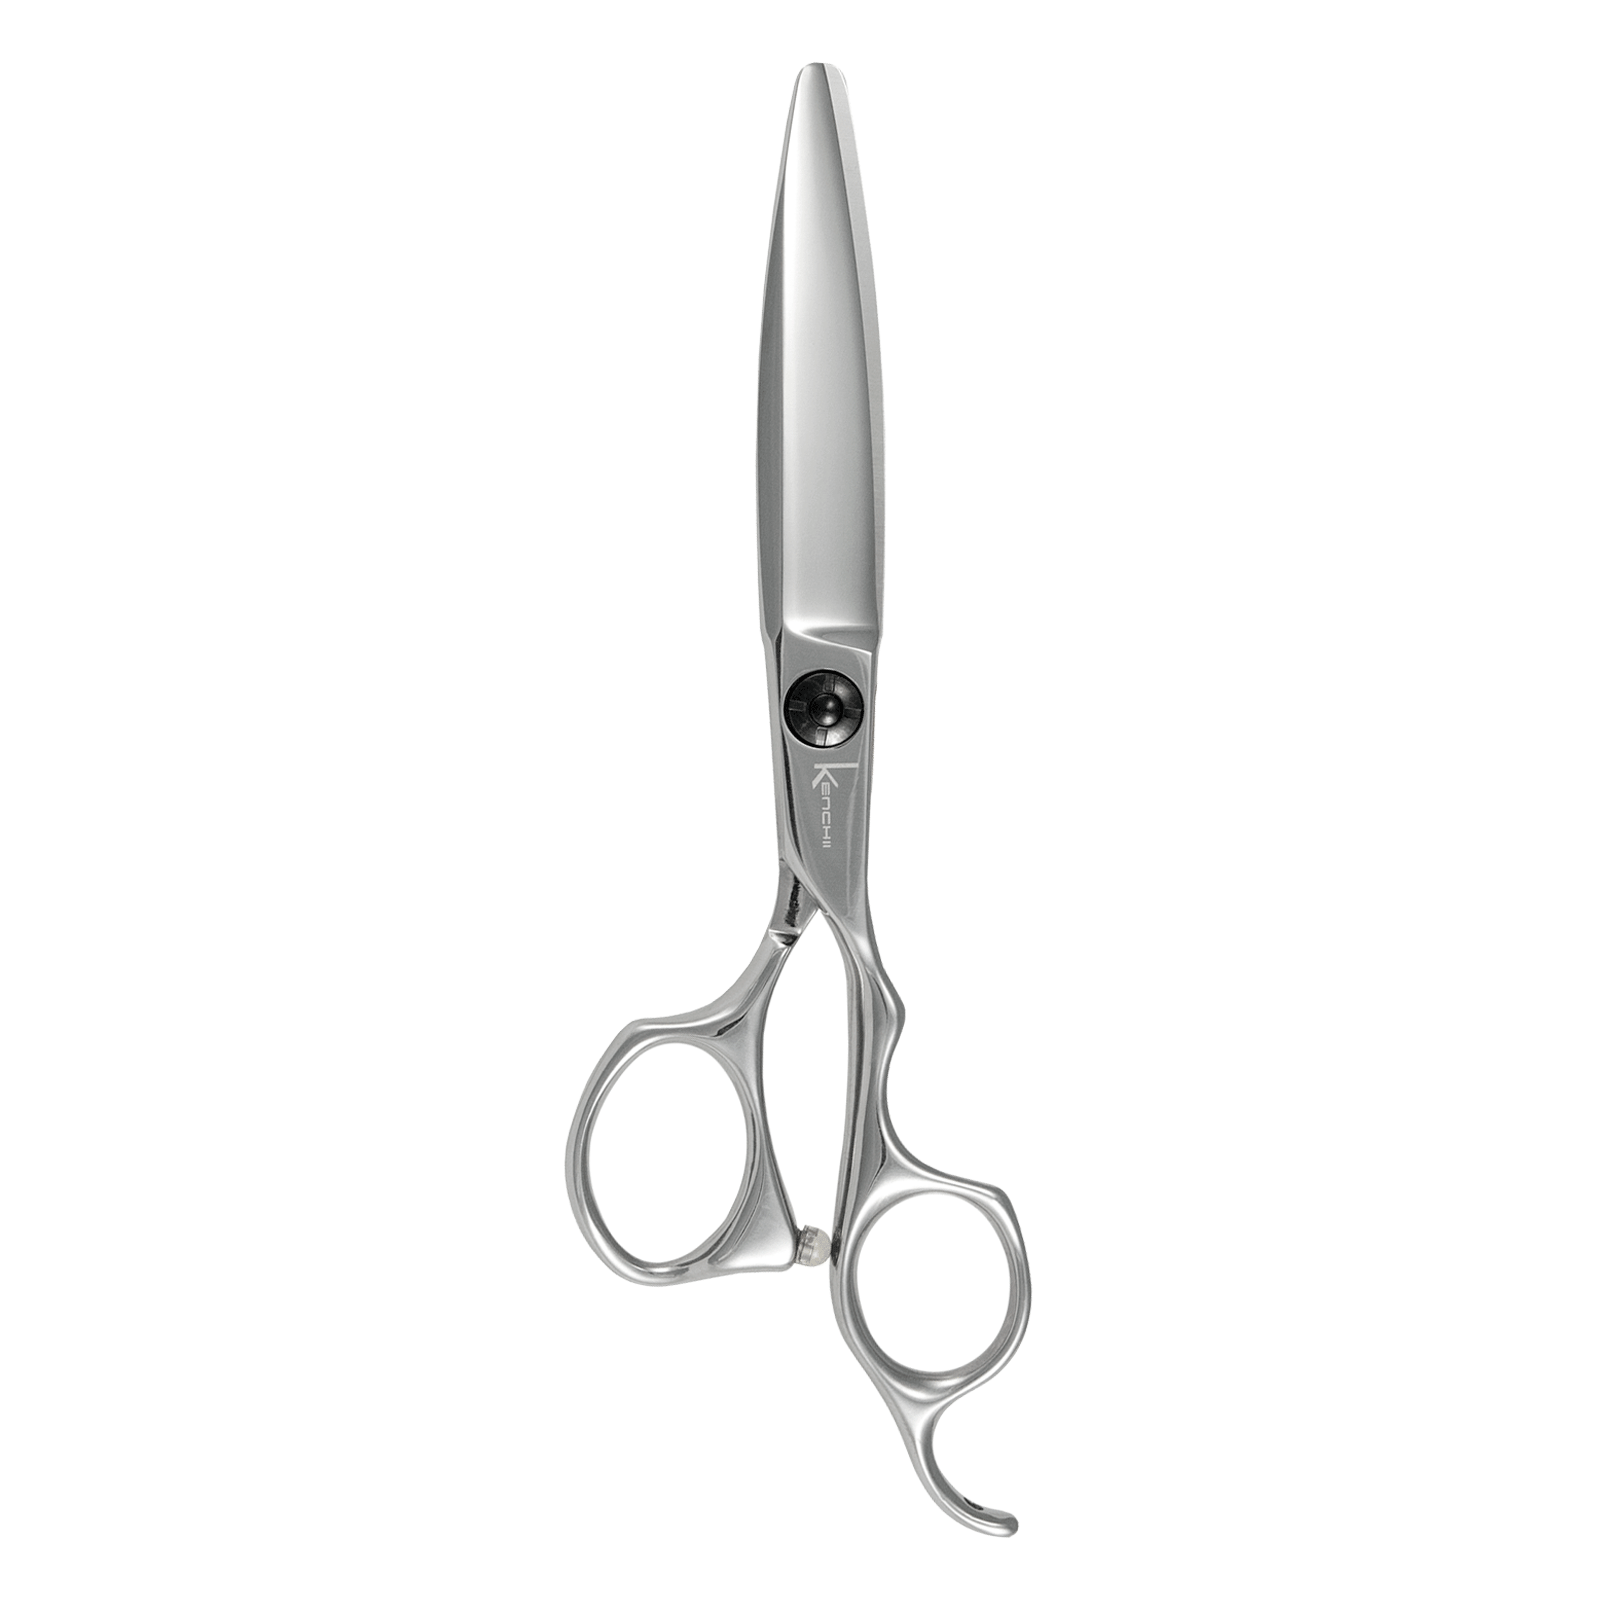 Kenchii Professional Epic Dry Cut Shears - 5.8 Inch